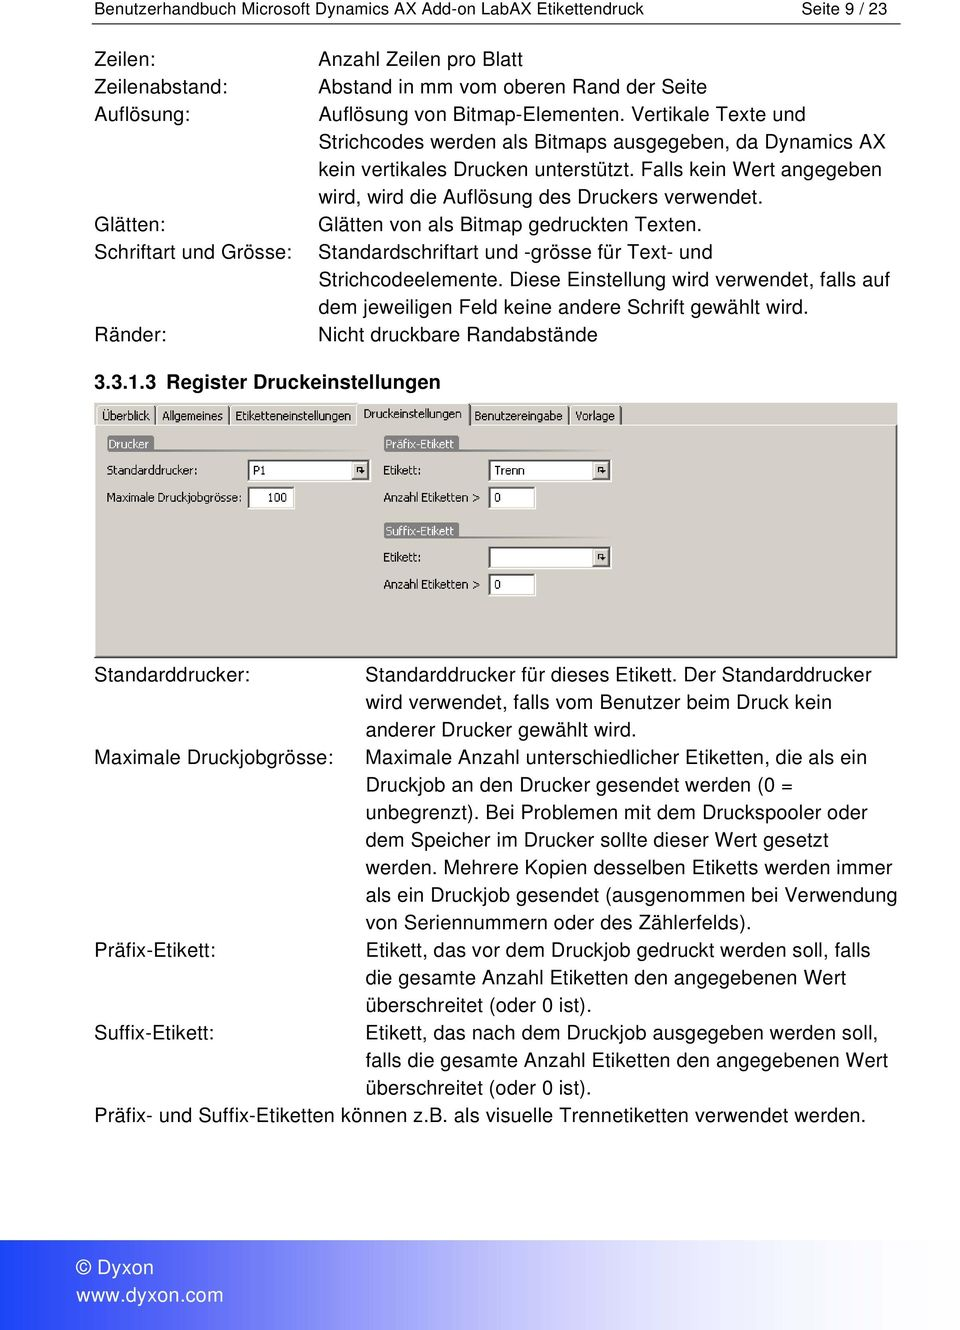 Benutzerhandbuch Microsoft Dynamics AX Add-on LabAX Etikettendruck - PDF